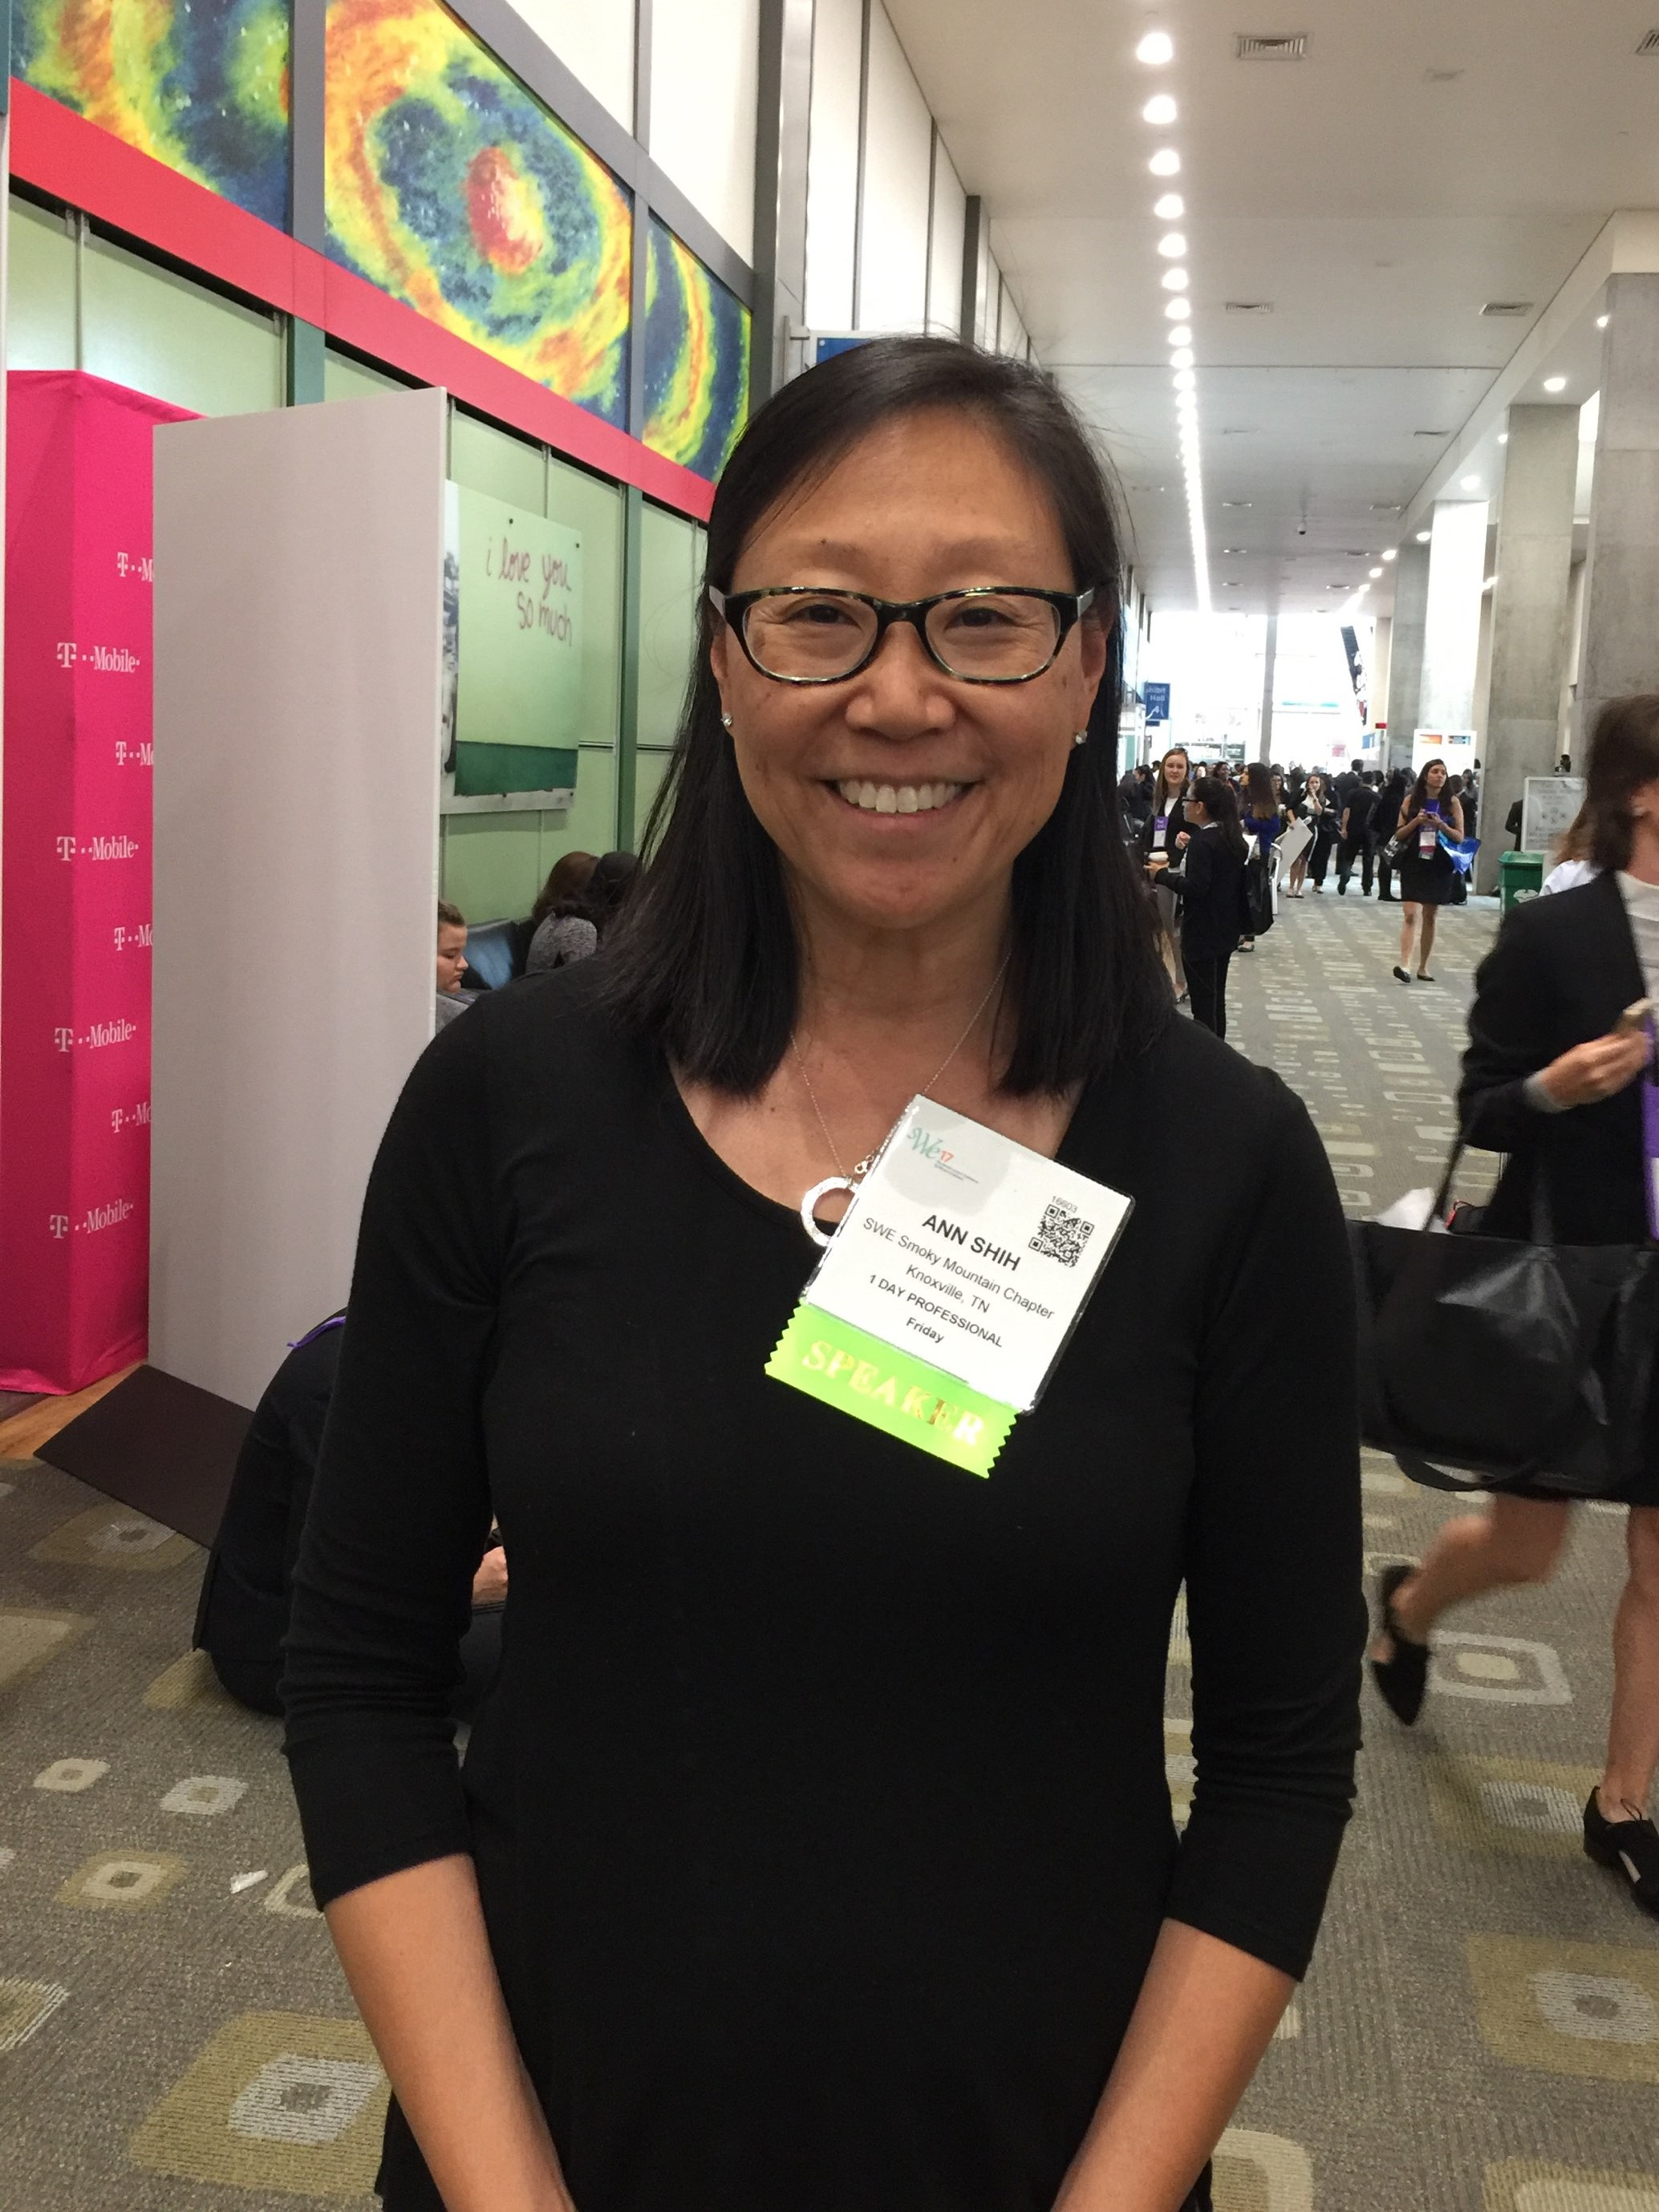 Y-12 process engineer and Society of Women Engineers member, Ann Shih, at the 2017 National SWE Conference where she was a speaker.